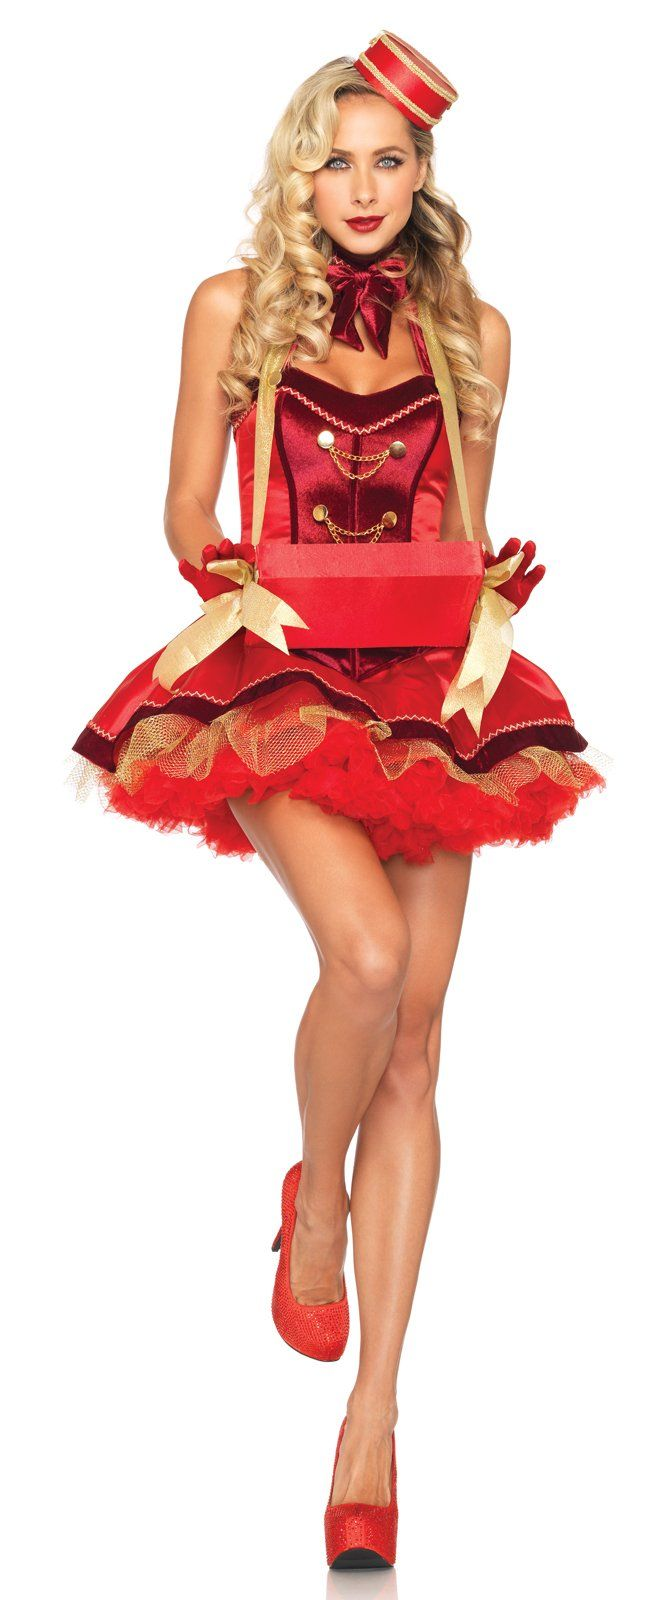 supposed to be a cigarette girl costume, but take away the cigarette box, and you have a super cute bellhop! :)